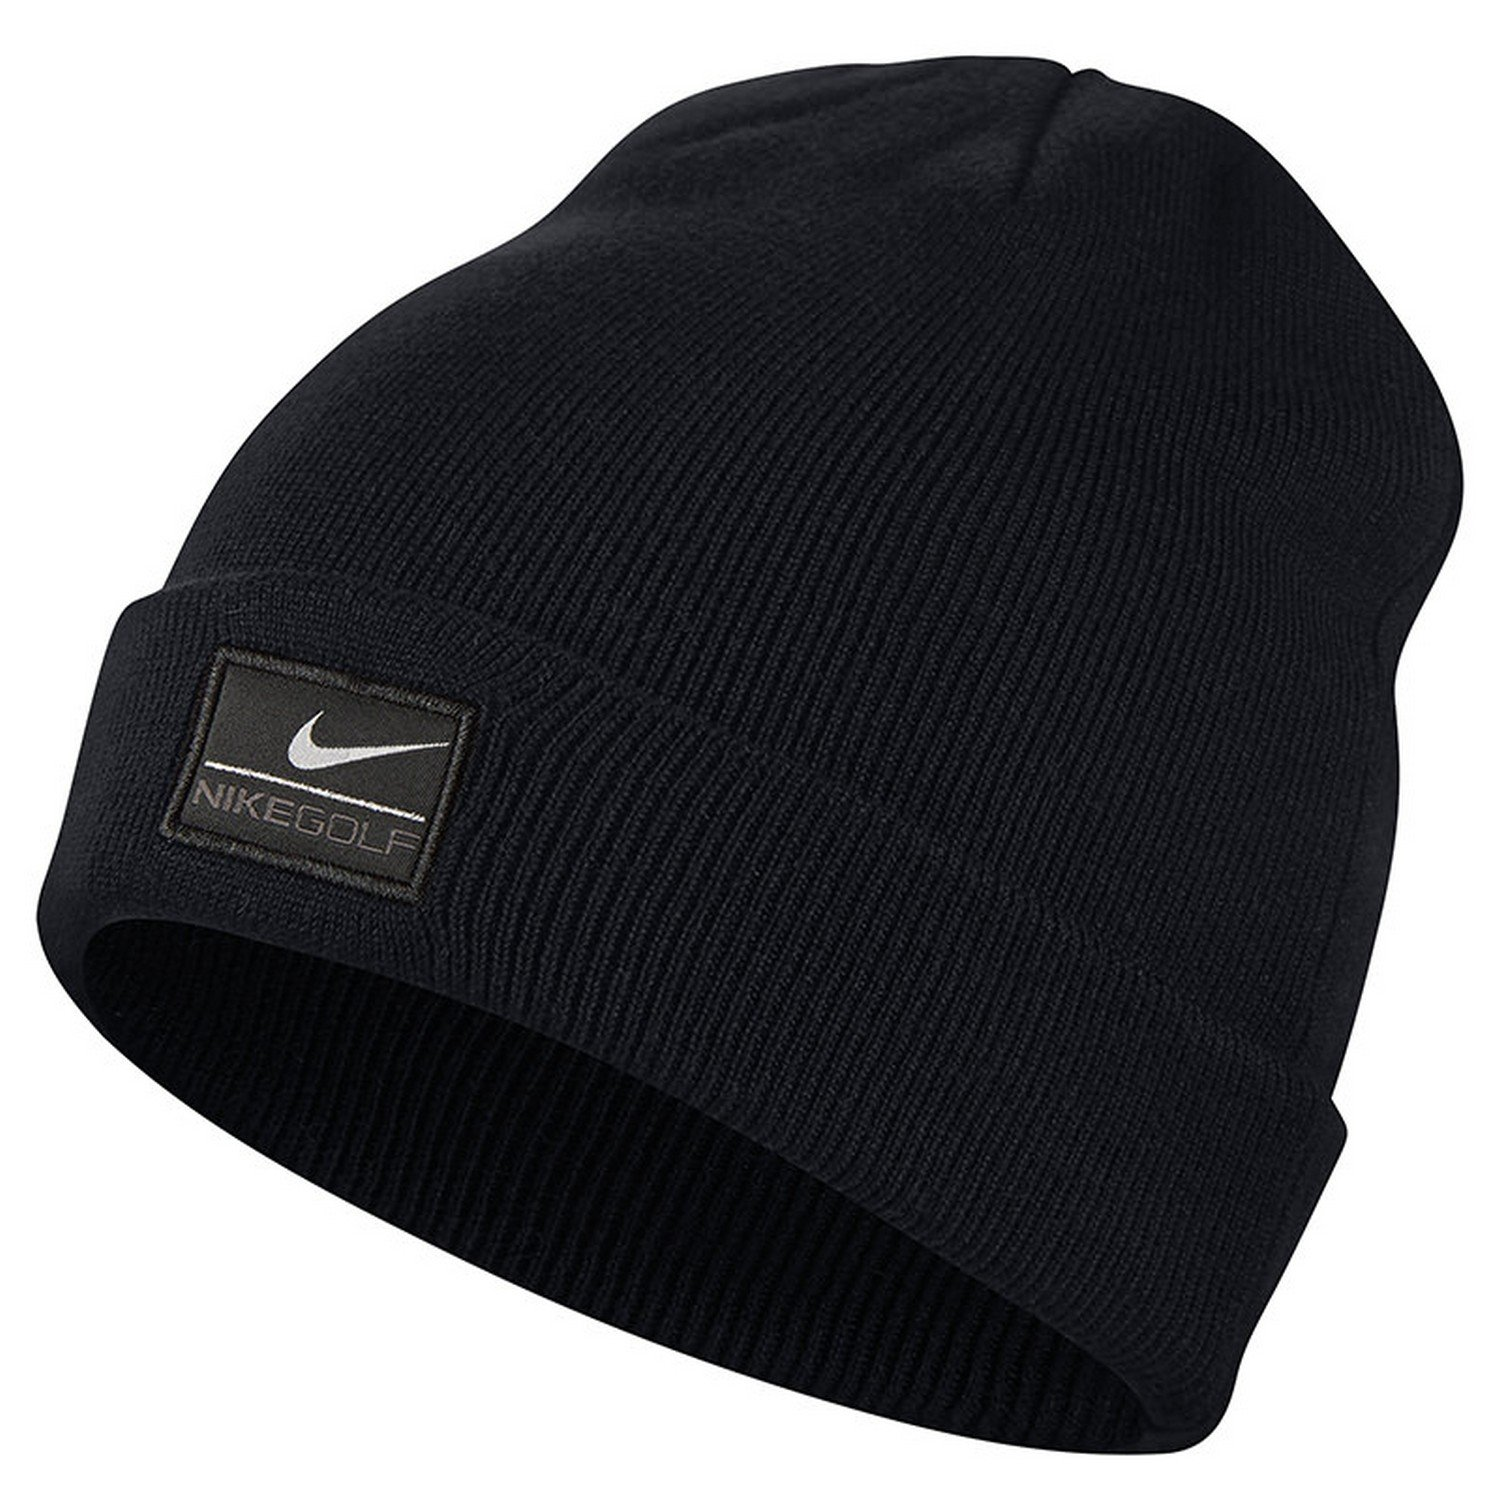 Nike Unisex Basic Knitted Winter Beanie Hat unisex winter plicate baggy beanie knit crochet ski hat cap red